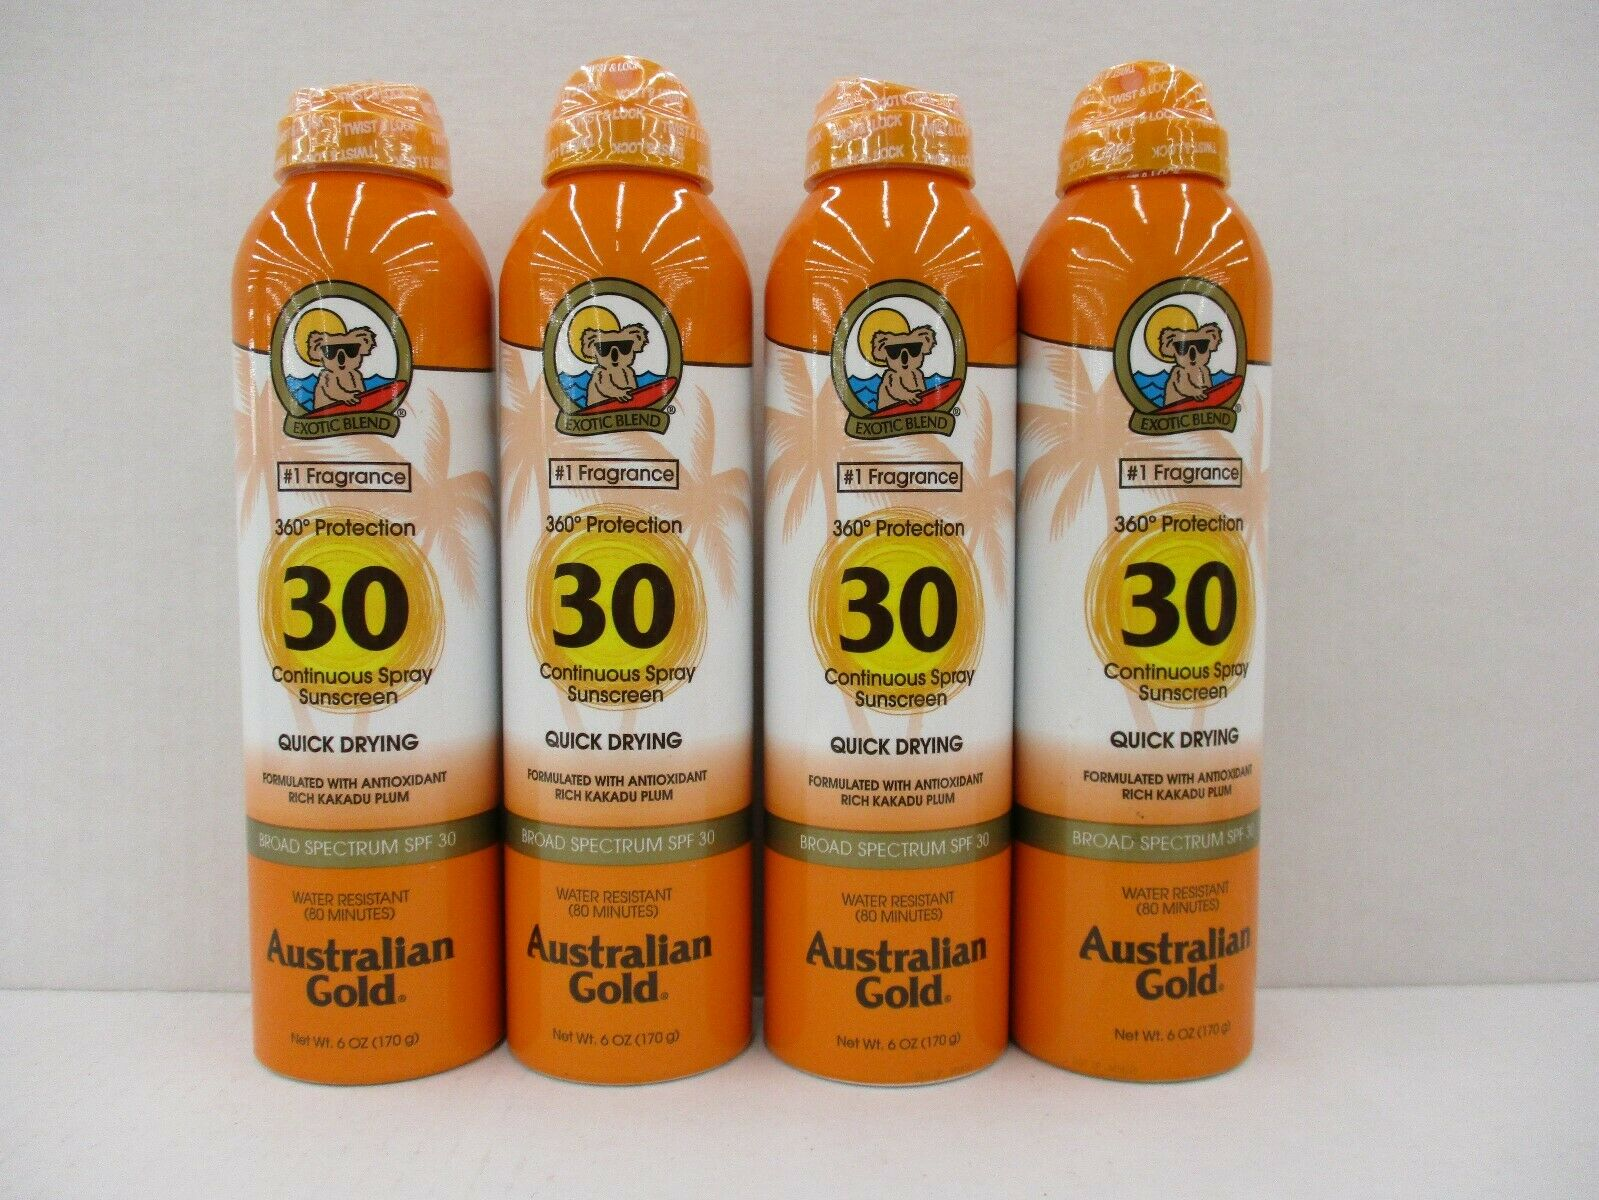 Australian Gold Continuous Spray Sunscreen, Dries Fast, Broa